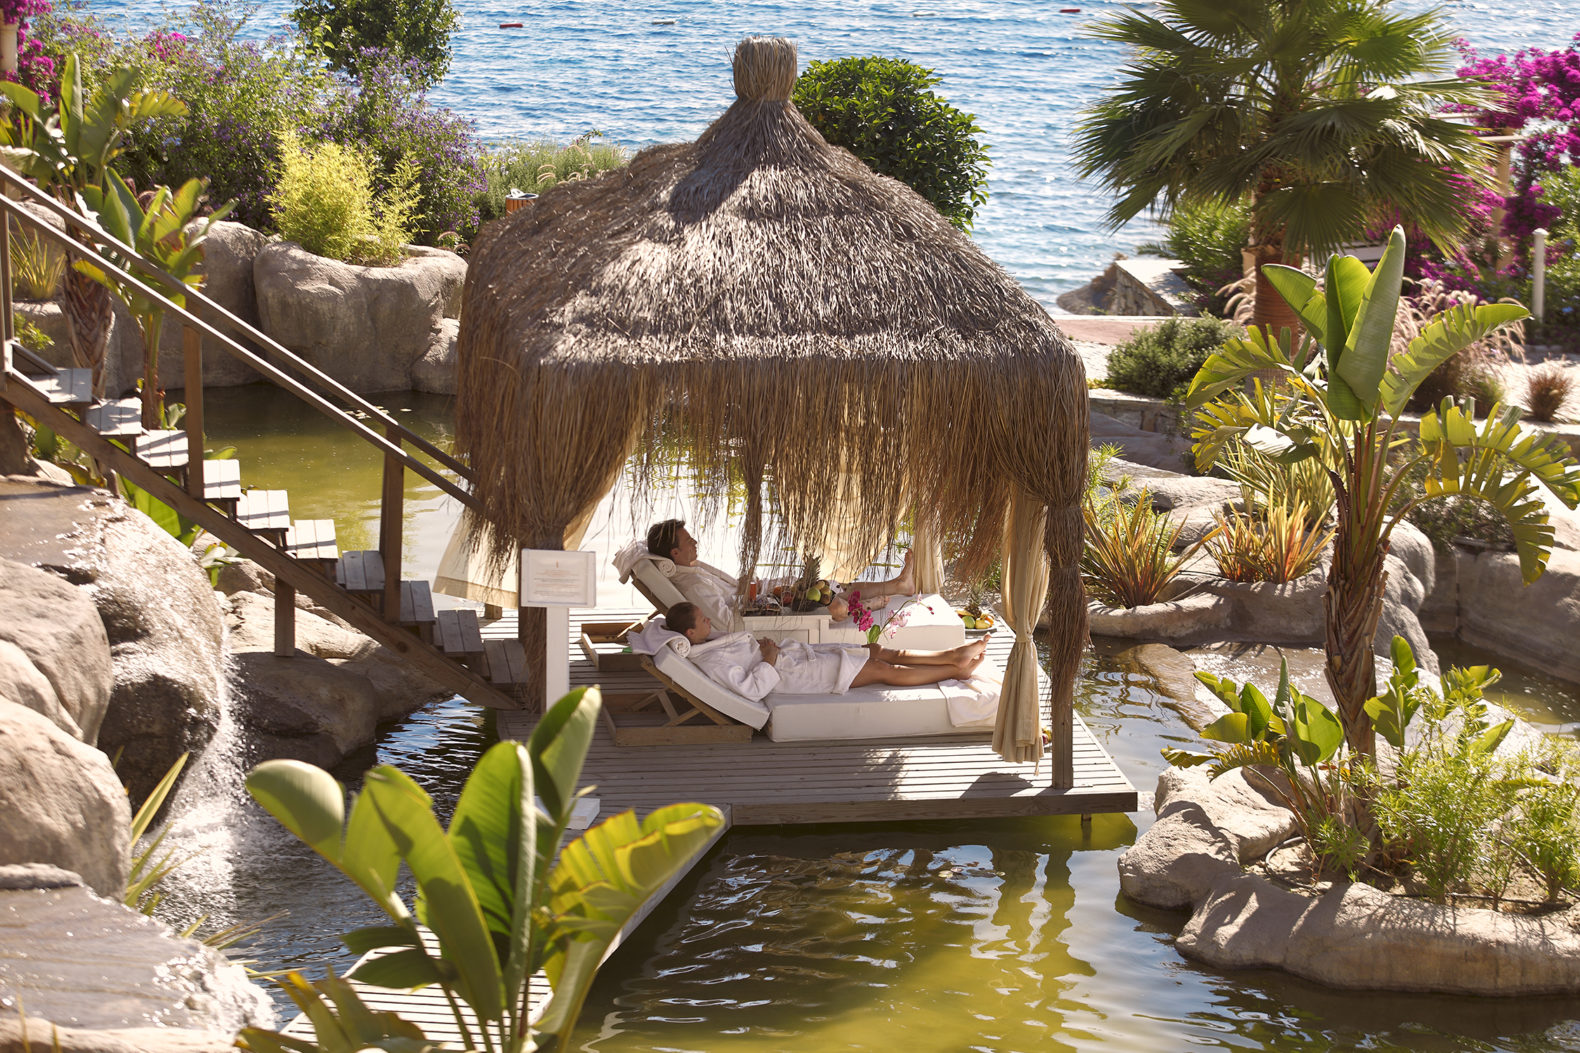 couple-relaxing-private-island-wood-sunbed-pool-sianji-wellbeing-resort-turkey